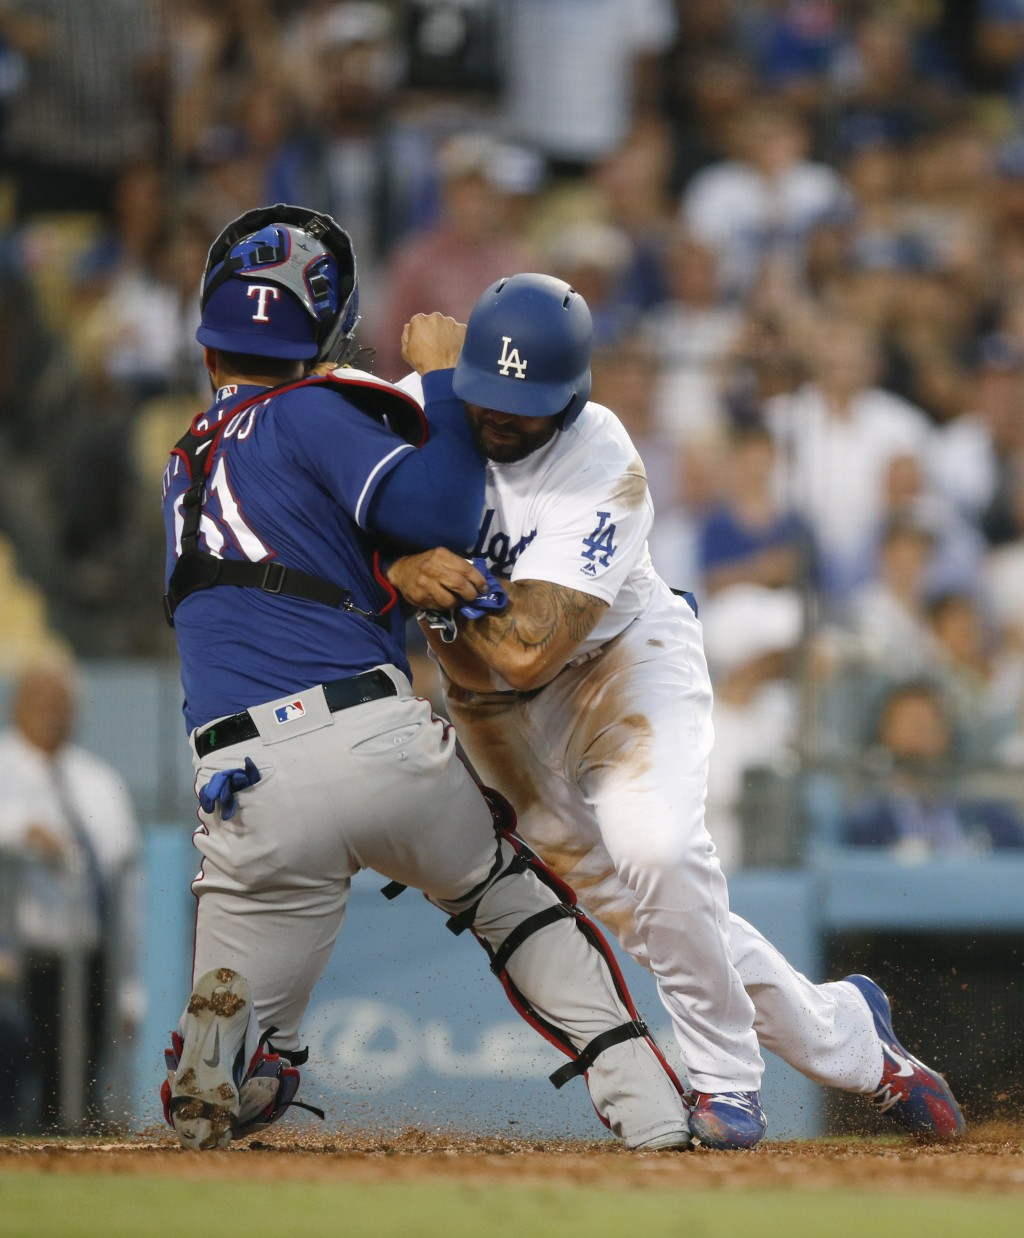 Los Angeles Dodgers' Matt Kemp, right, shoves Texas Rangers catcher Robinson Chirinos while trying to score on a single hit by Enrique Hernandez durin